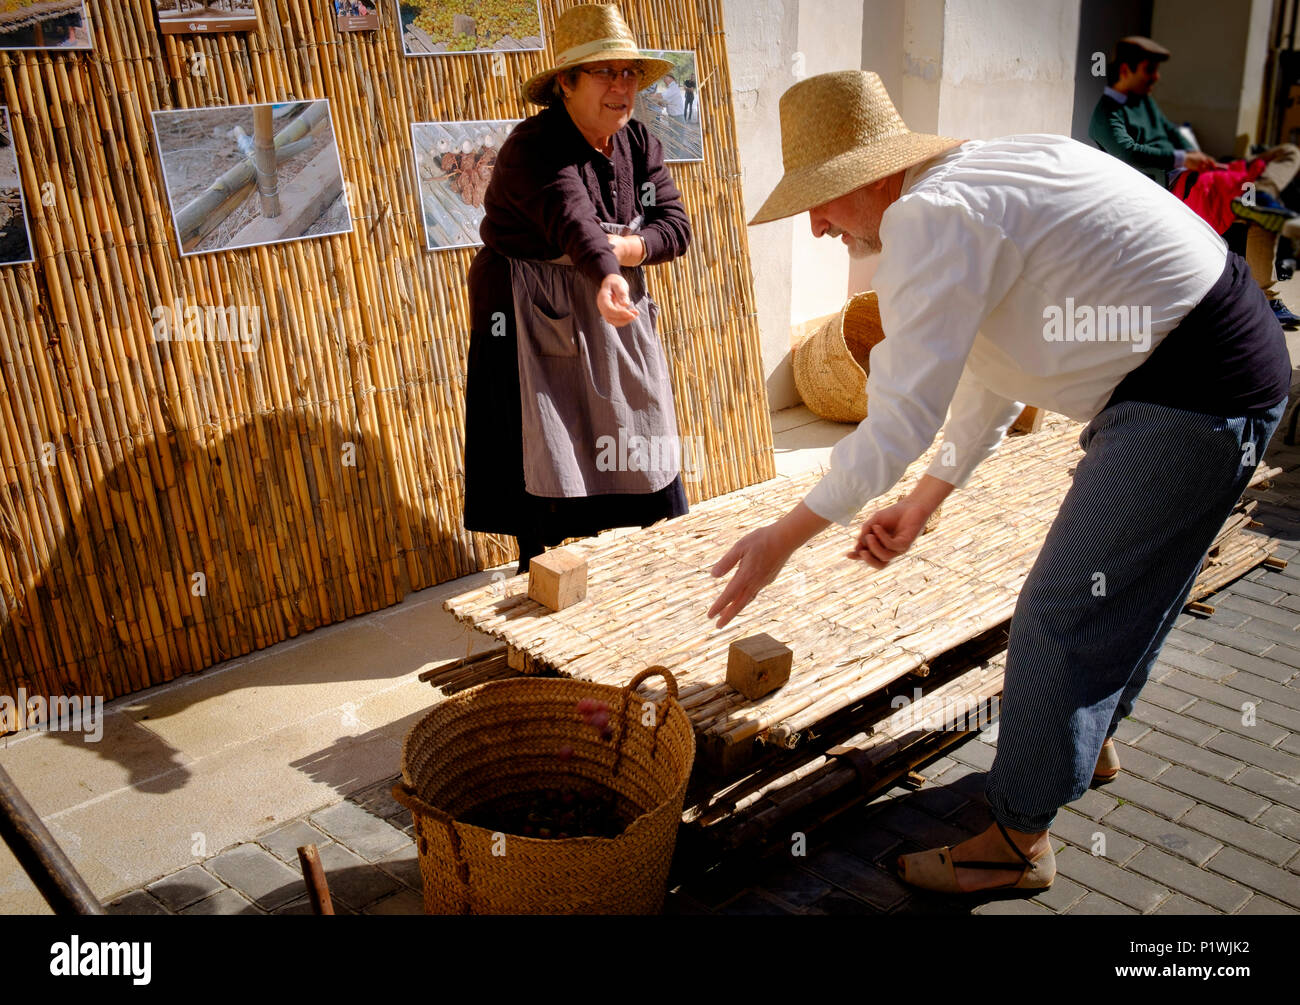 Man and woman dressed in traditional 19C costume with a hurdle used to dry the grapes to make raisins at a Spanish Fiesta - Stock Image